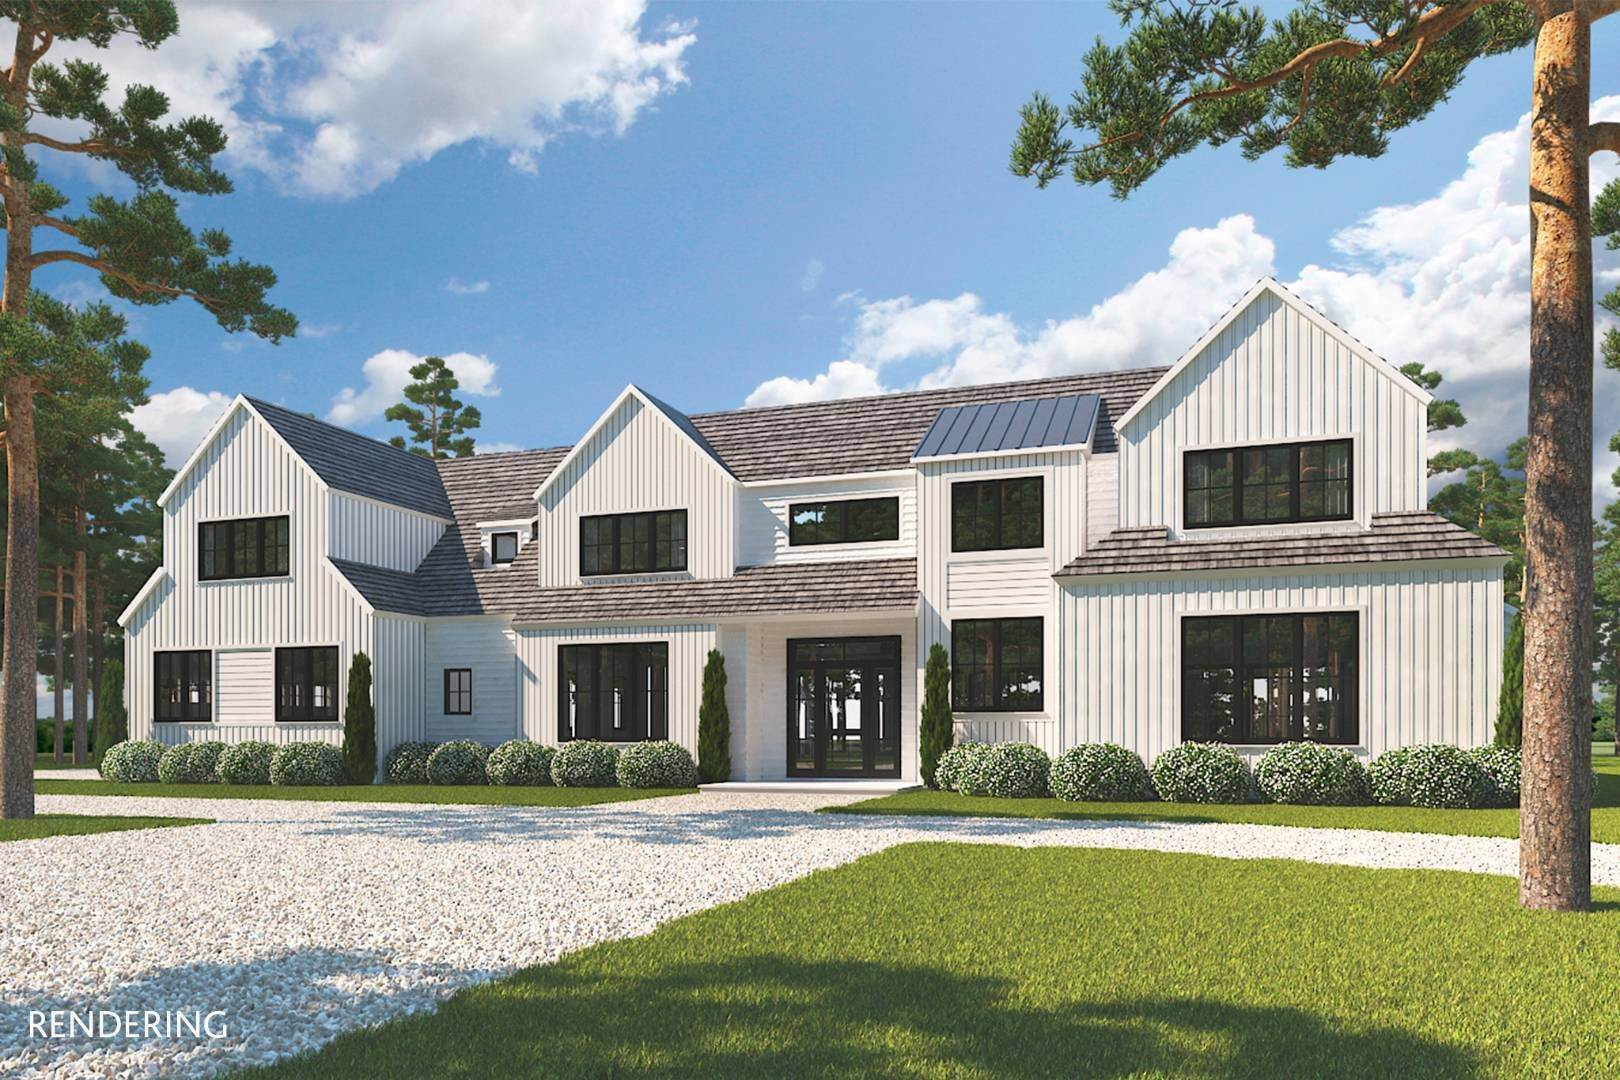 Single Family Home for Sale at Sagaponack Opportunity - Build Your Dream Home 363 Wainscott Harbor Road, Sagaponack, NY 11968